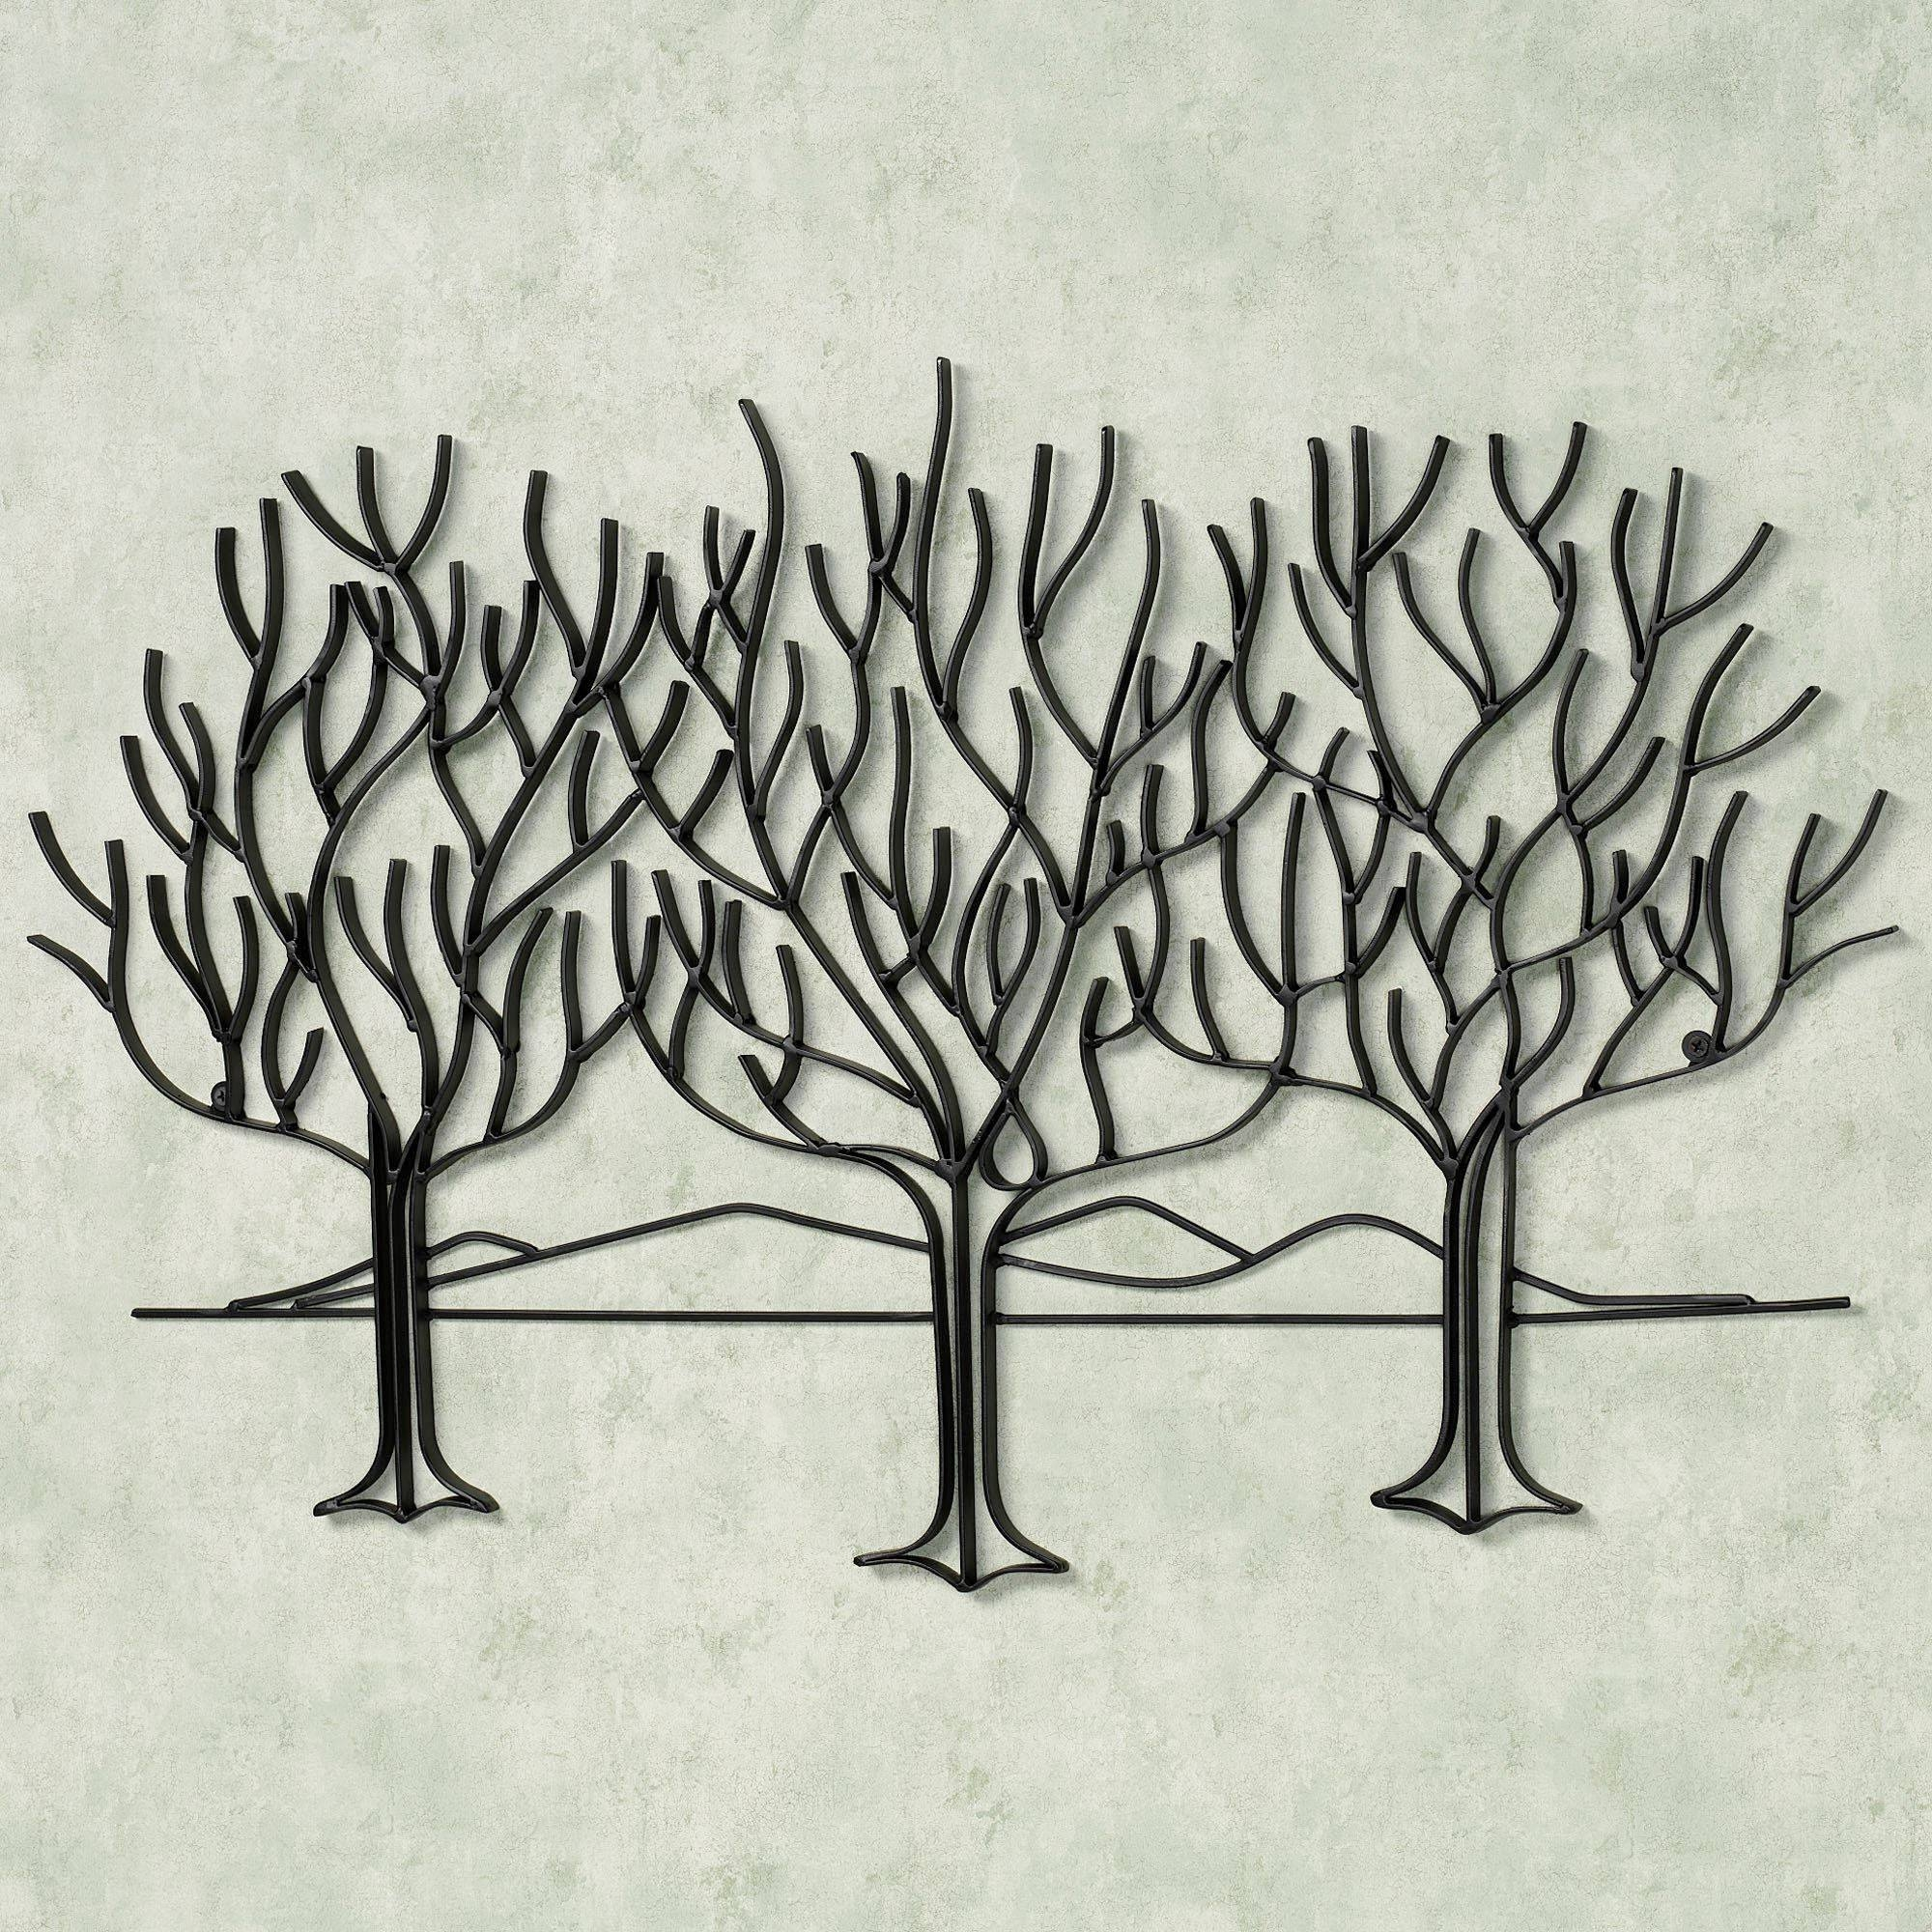 Wall Art Designs: Metal Wall Art Trees Black Metal Wall Art Olive Throughout Most Recently Released Black Metal Wall Art (View 9 of 20)